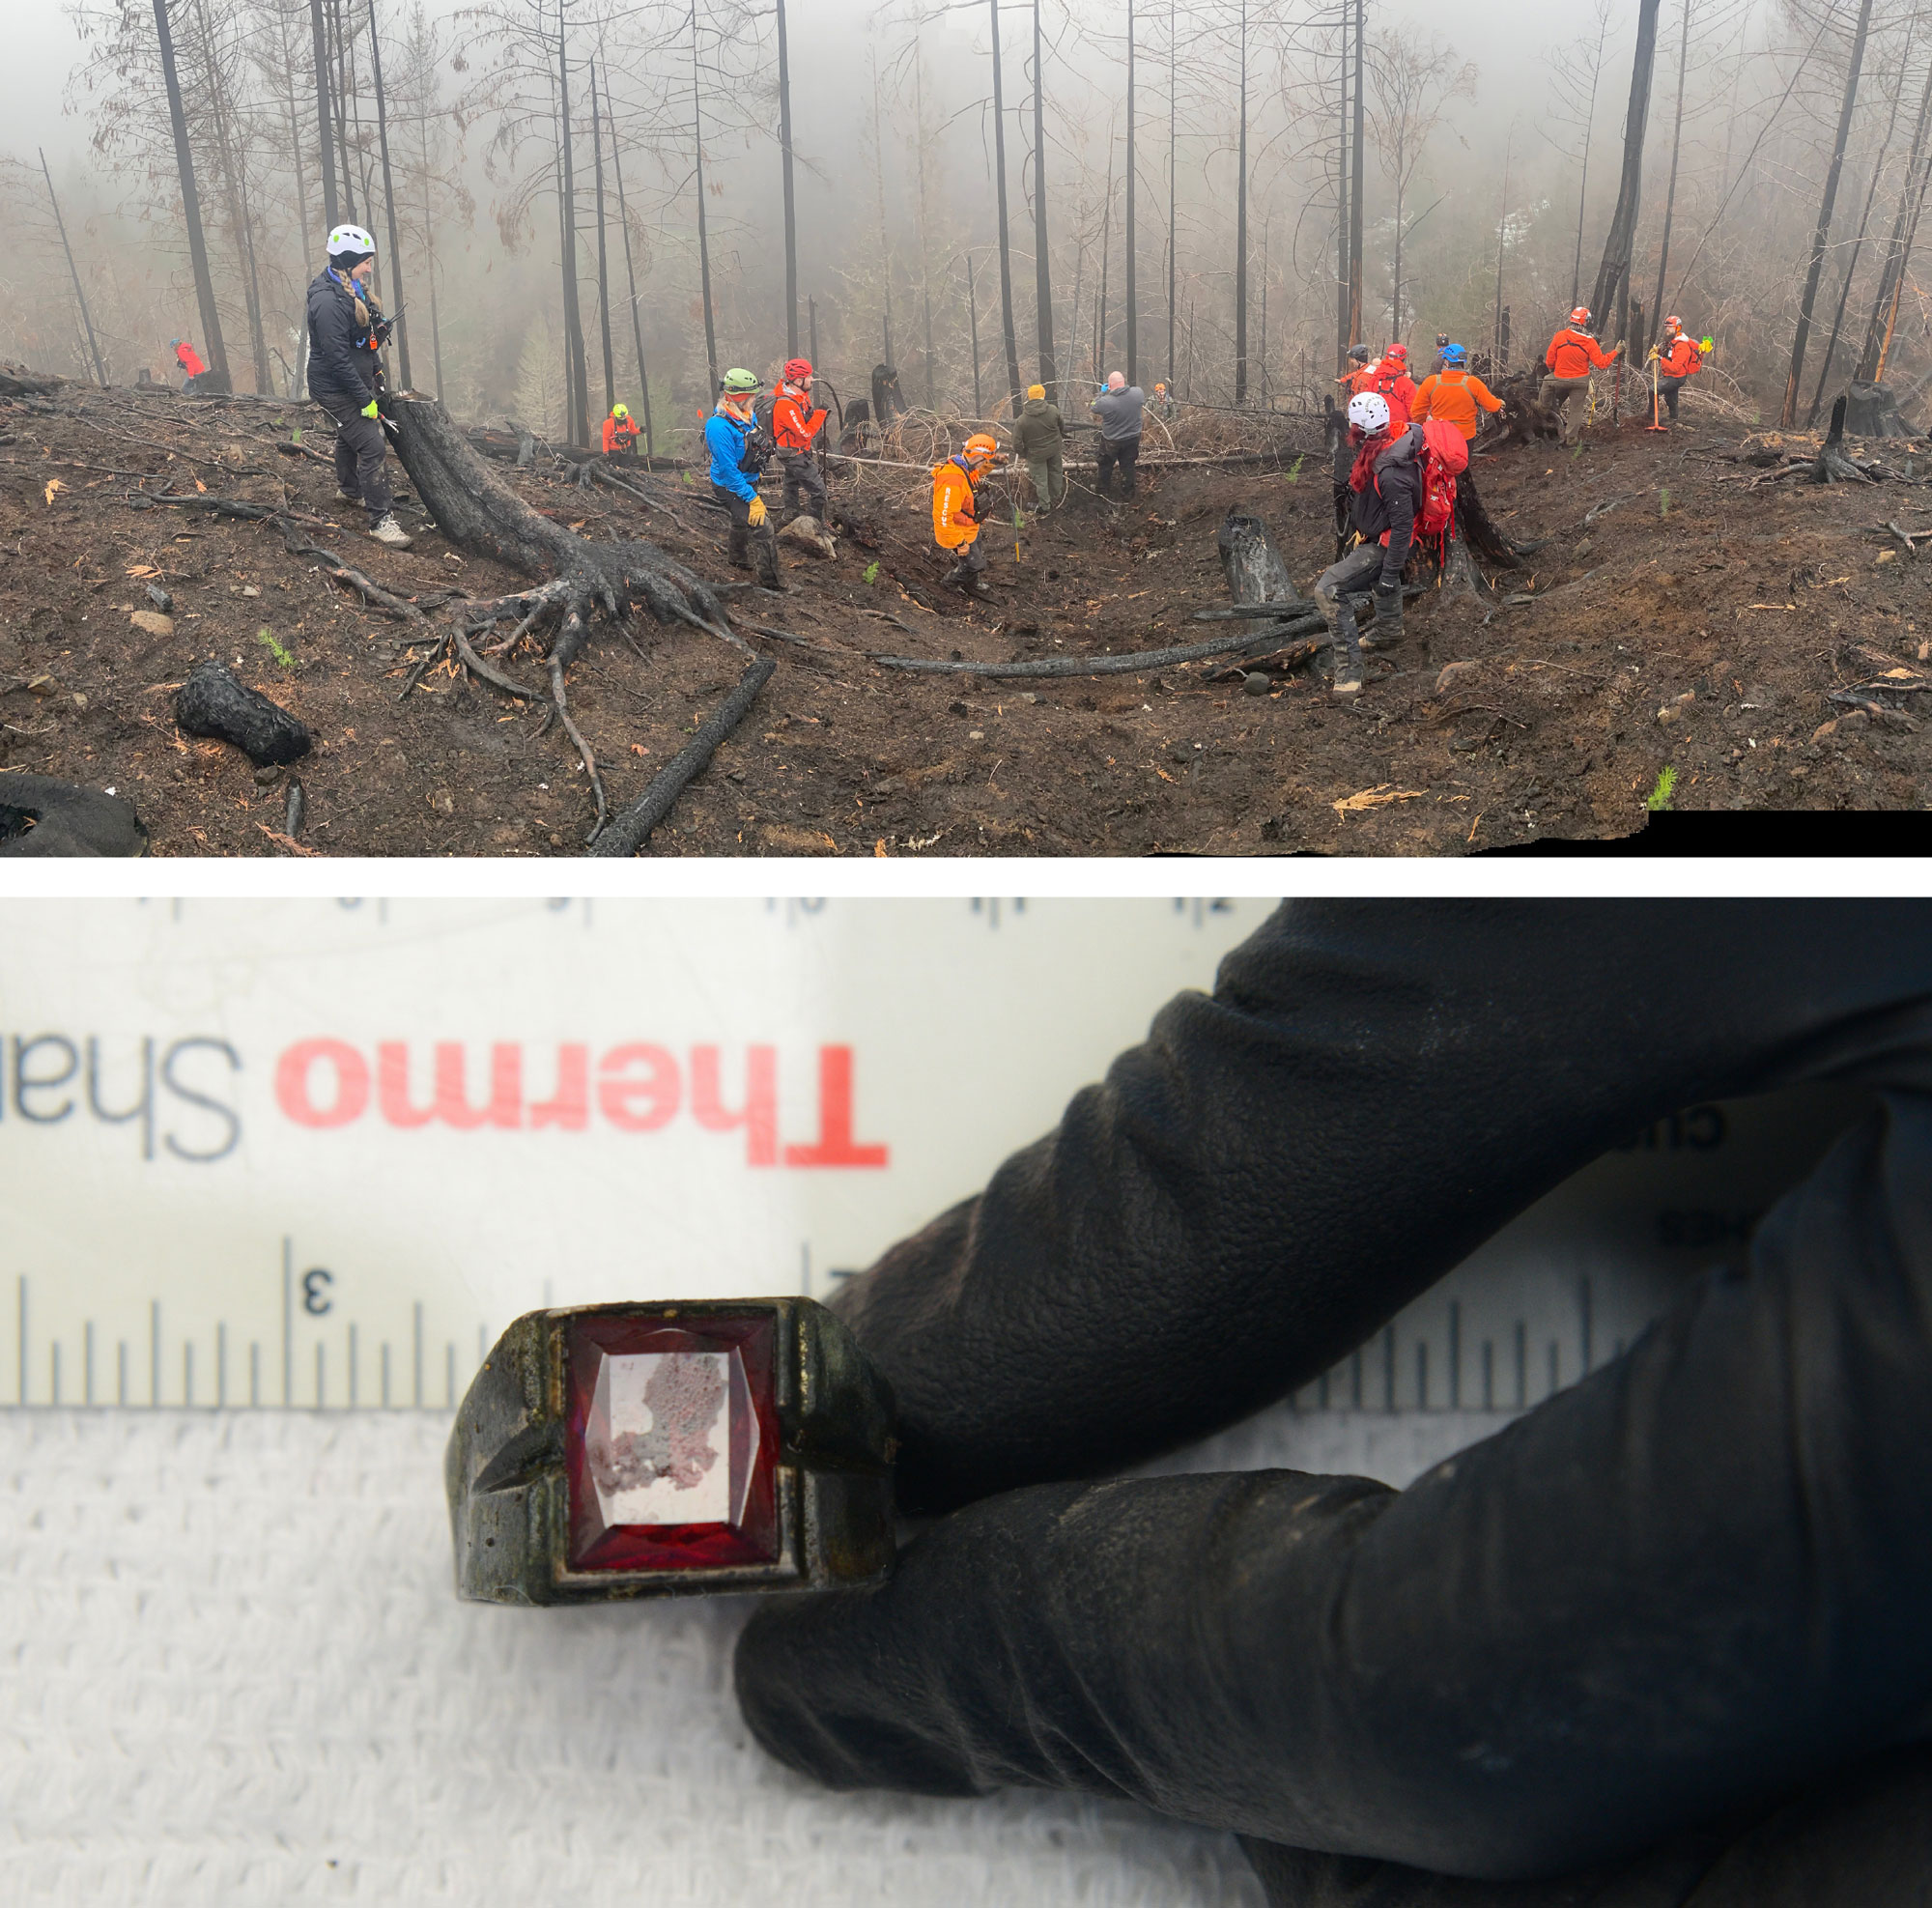 Searchers and recovered ring